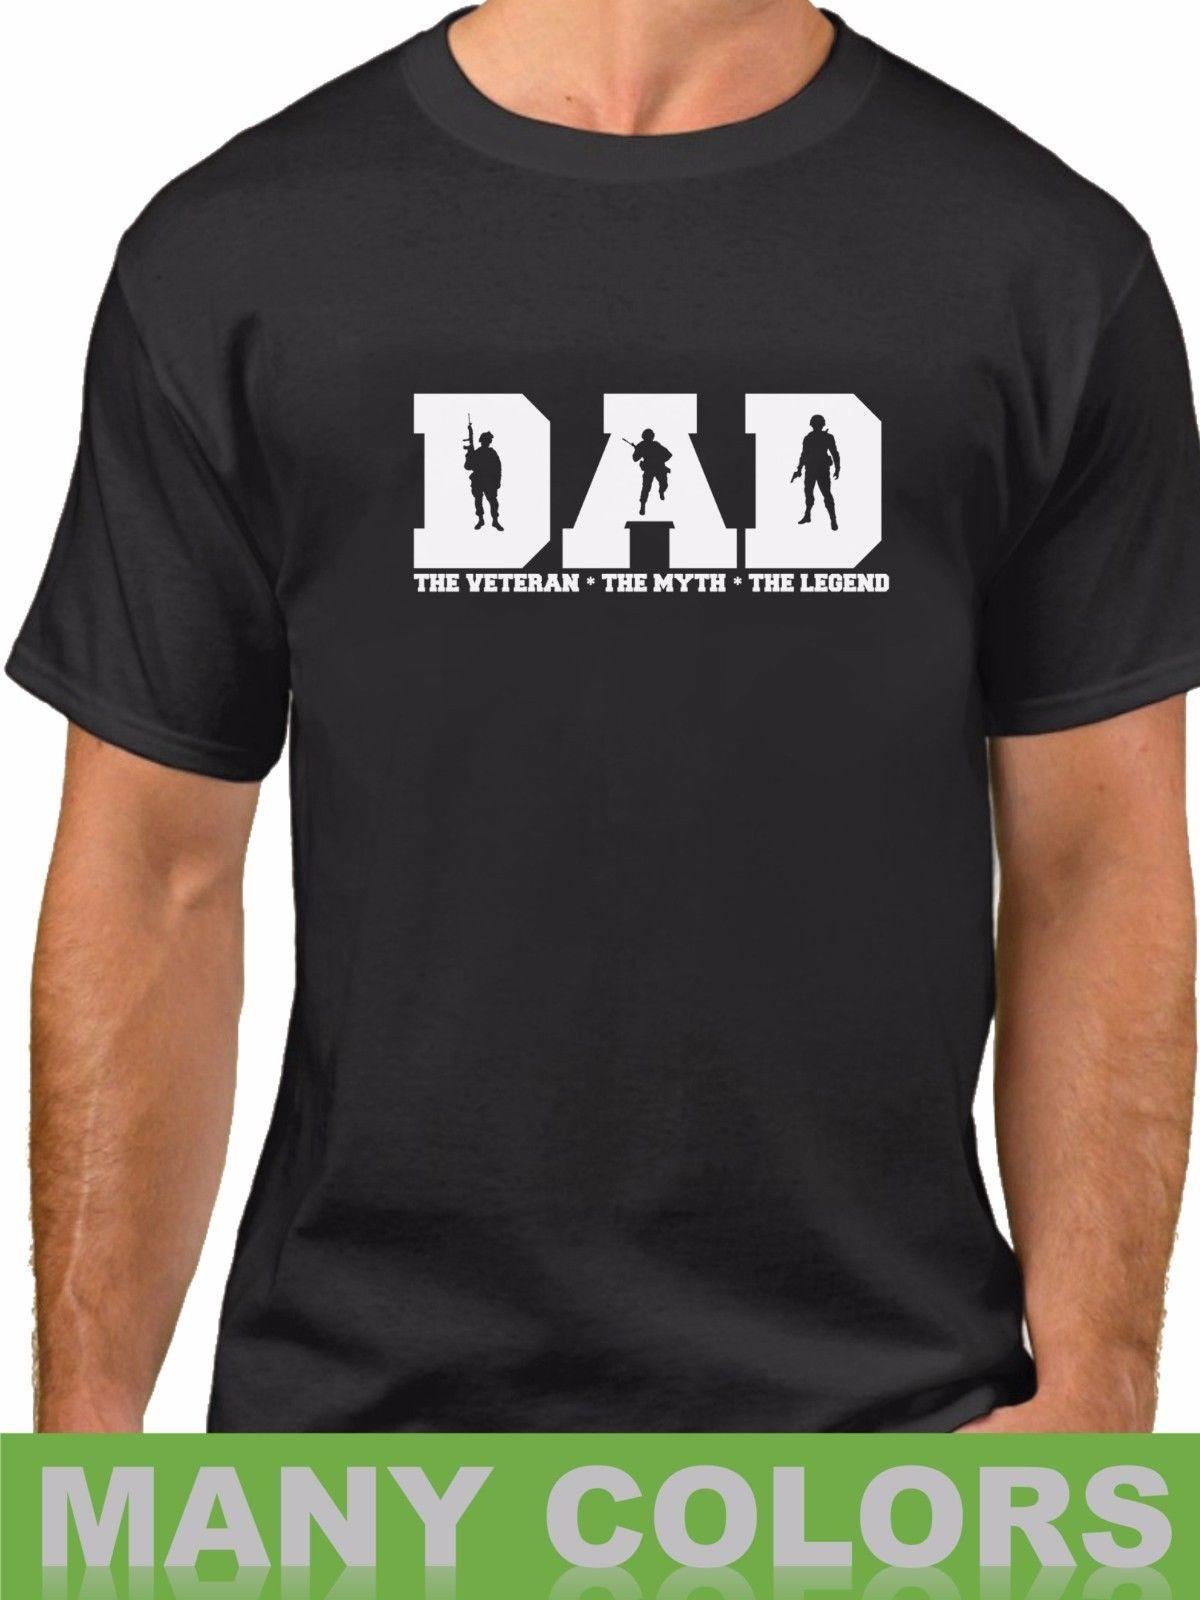 98c86d96d DAD The Veteran Myth Legend Shirt Champs USA Soldier Veterans Day Fathers  Day Cool Tee Designs Tees Shirts Cheap From Identatee, $11.01  DHgate.Com